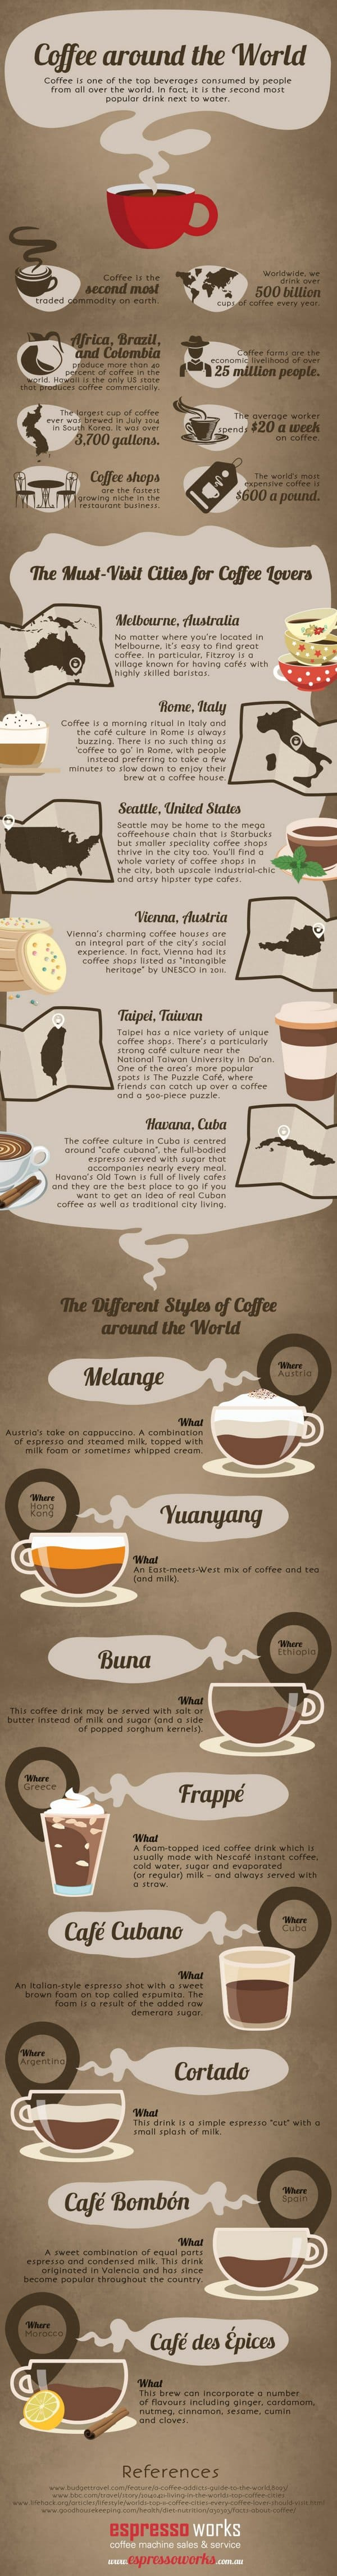 Coffee culture around the world infograph